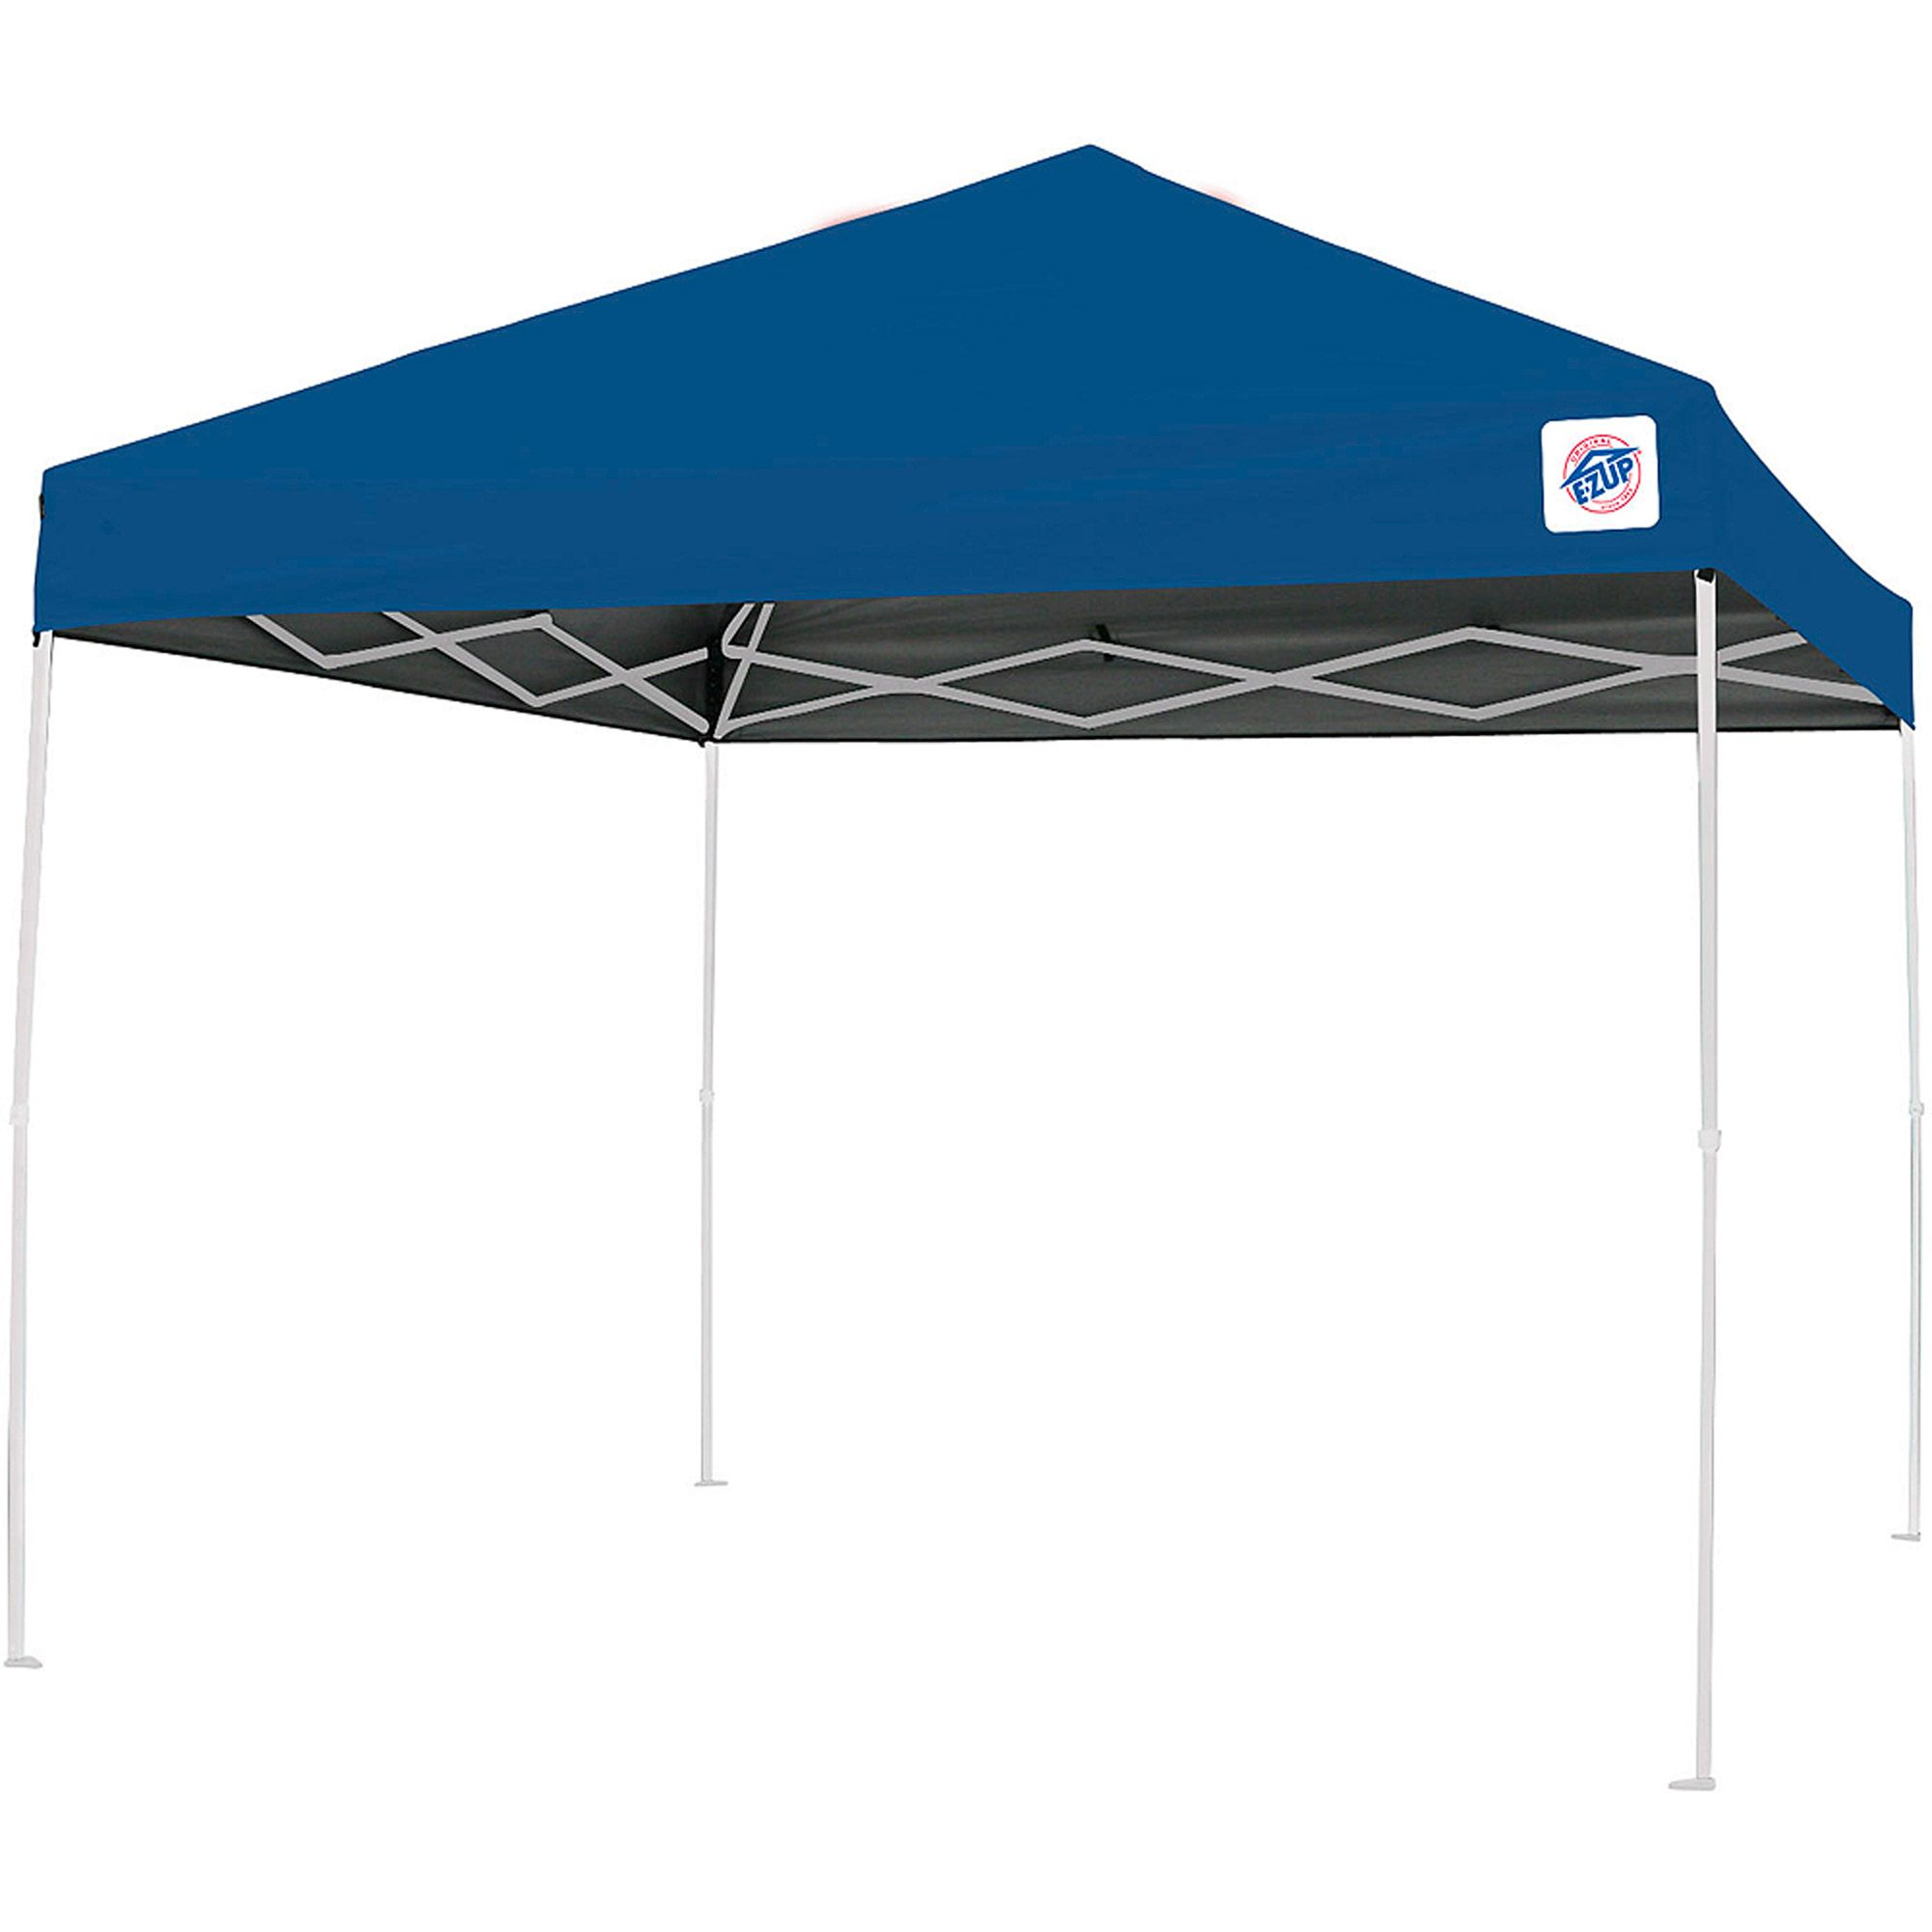 Ozark Trail 10x10 Slant Leg Instant Canopy Gazebo Shelter 100 Sq Ft Coverage Walmart Com In 2020 Outdoor Patio Decor Instant Canopy Gazebo Tent